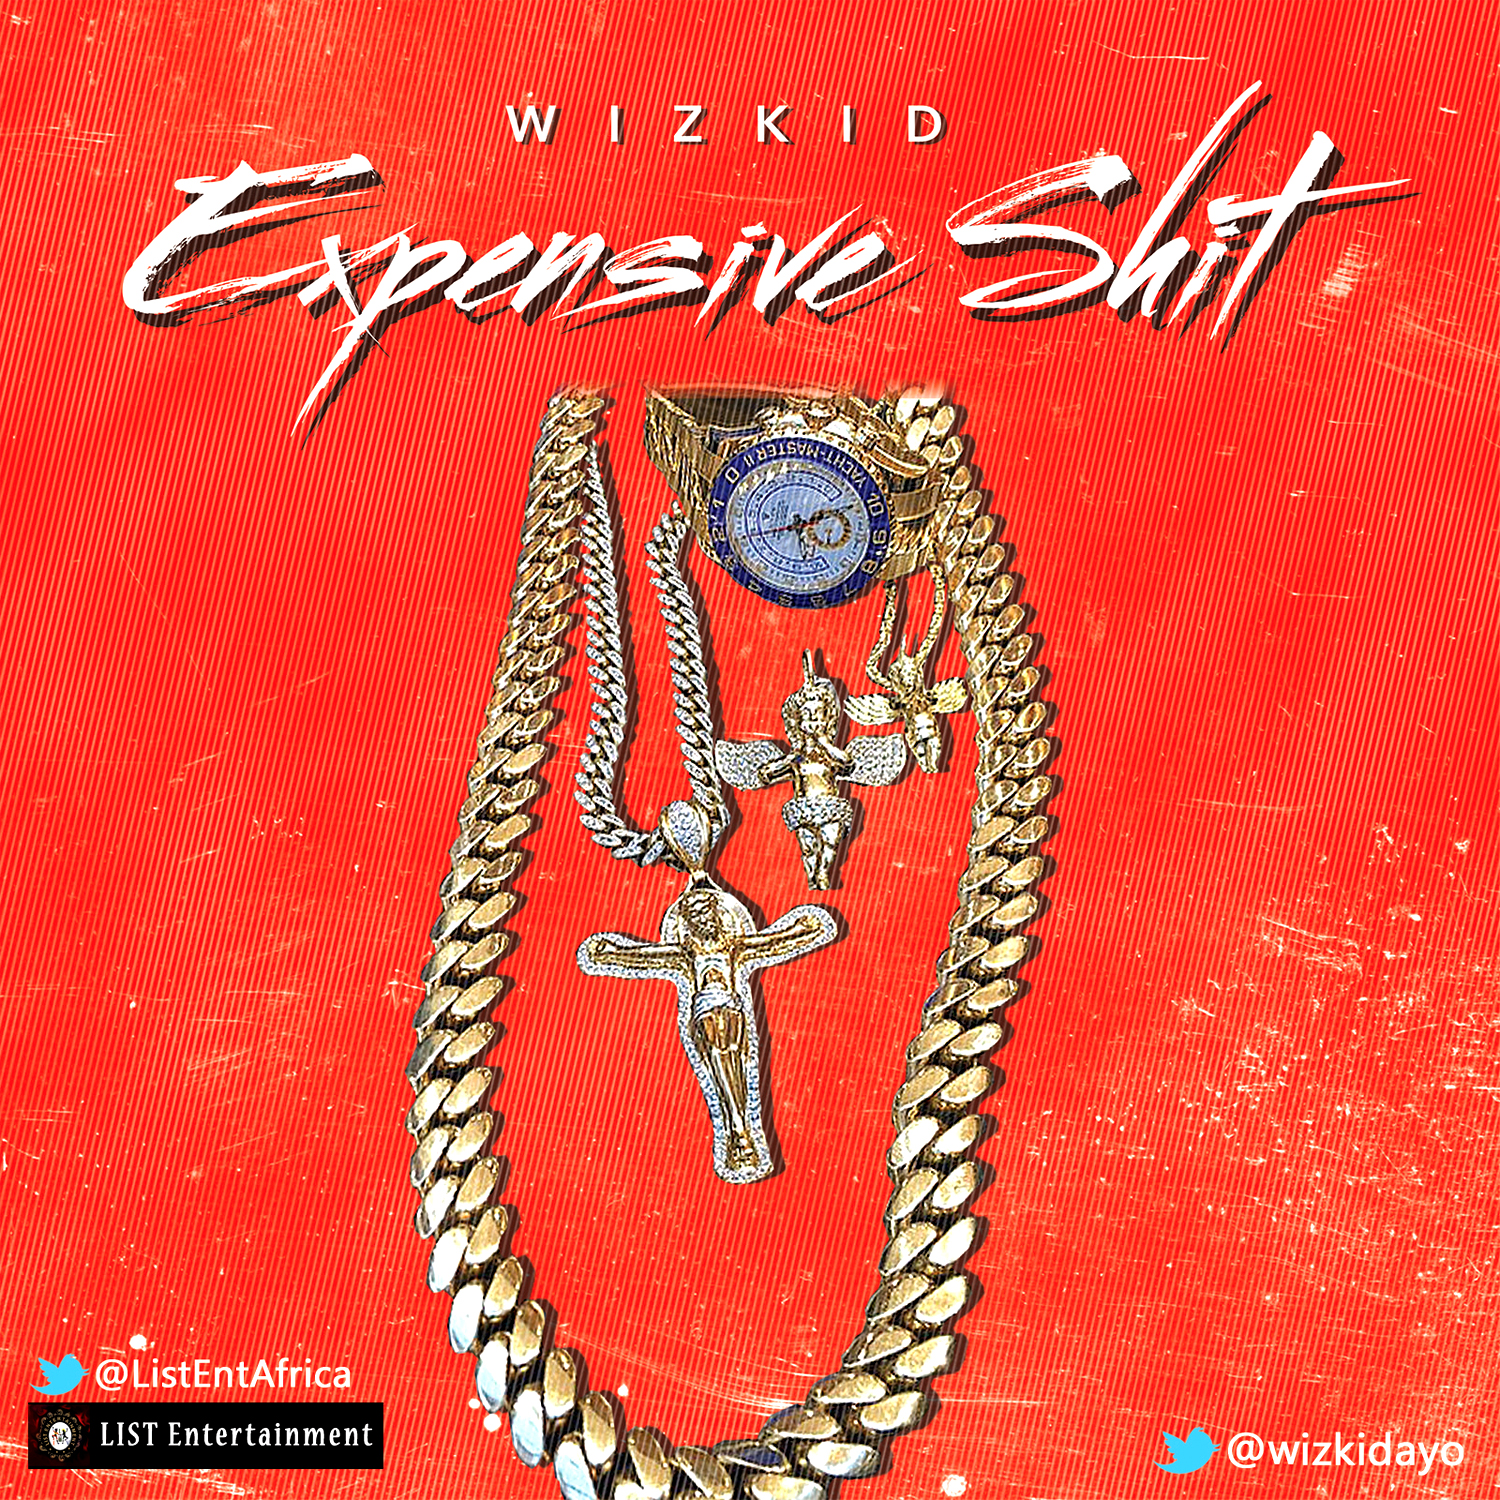 wizkid expensive shit